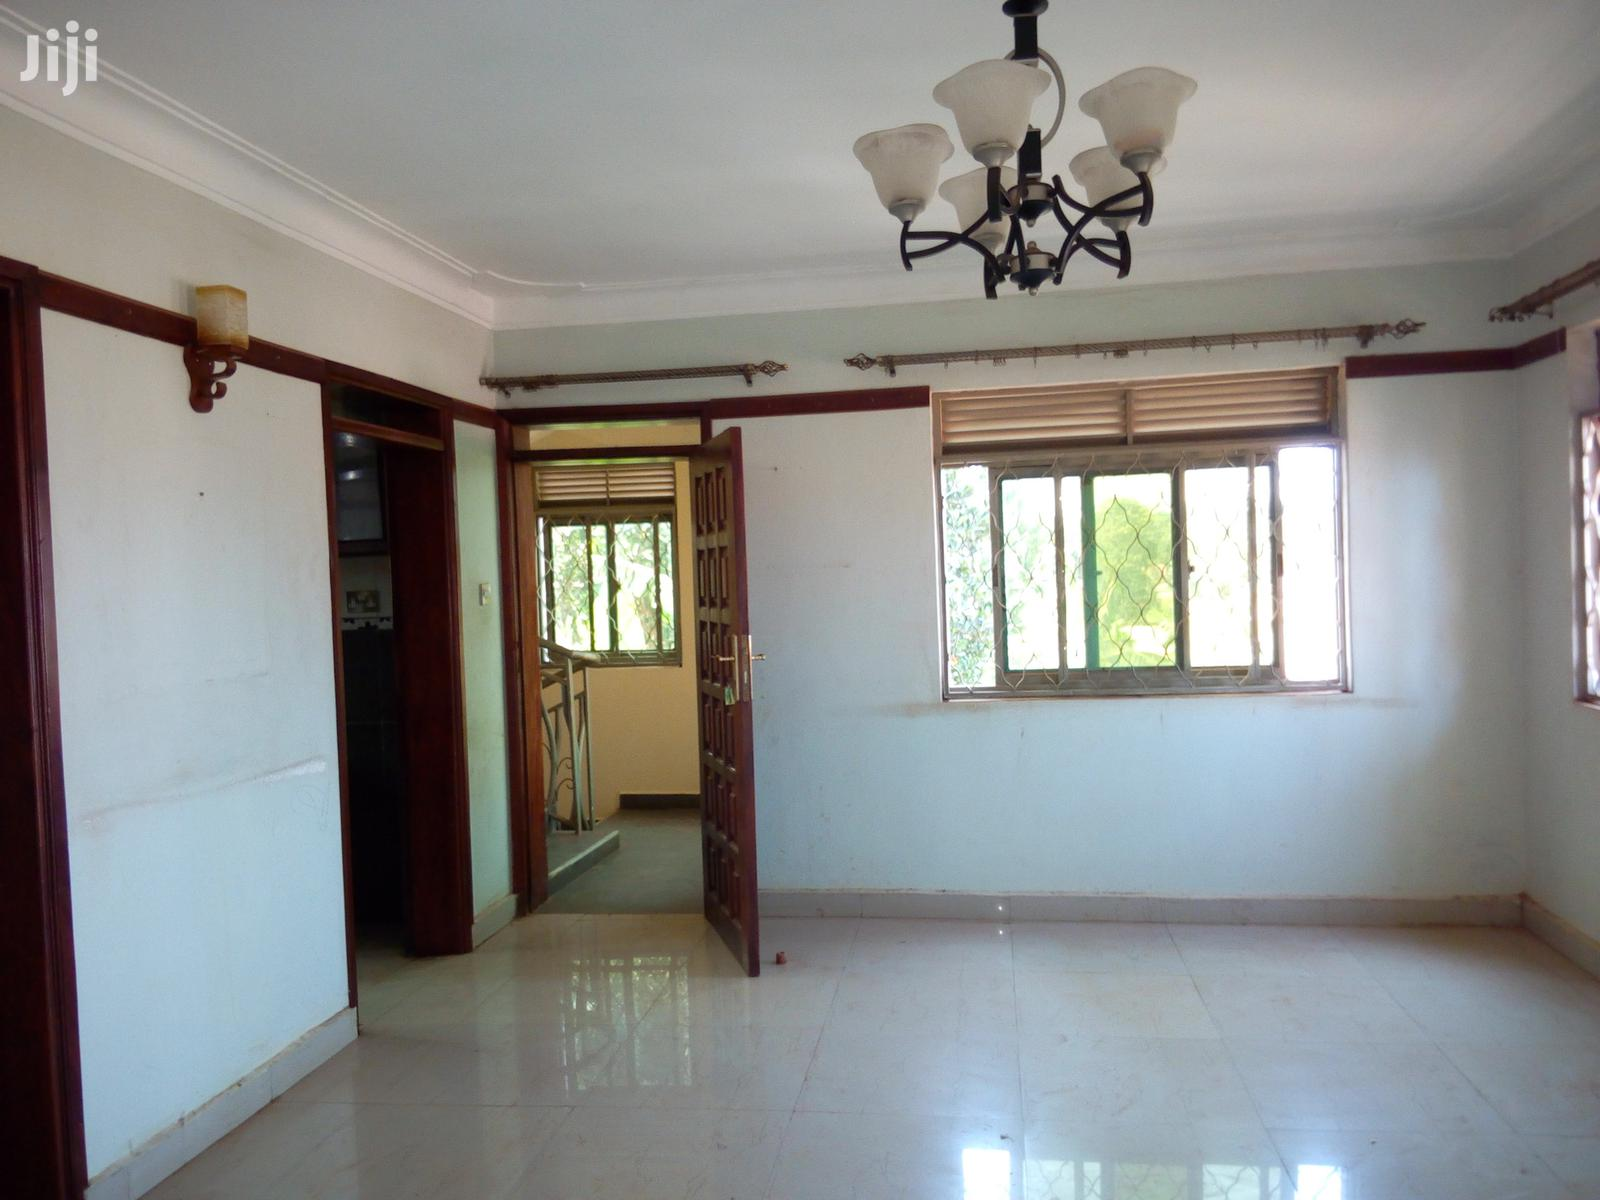 Two Bedroom Two Toilets Apartment In Kyaliwajjala For Rent | Houses & Apartments For Rent for sale in Kampala, Central Region, Uganda